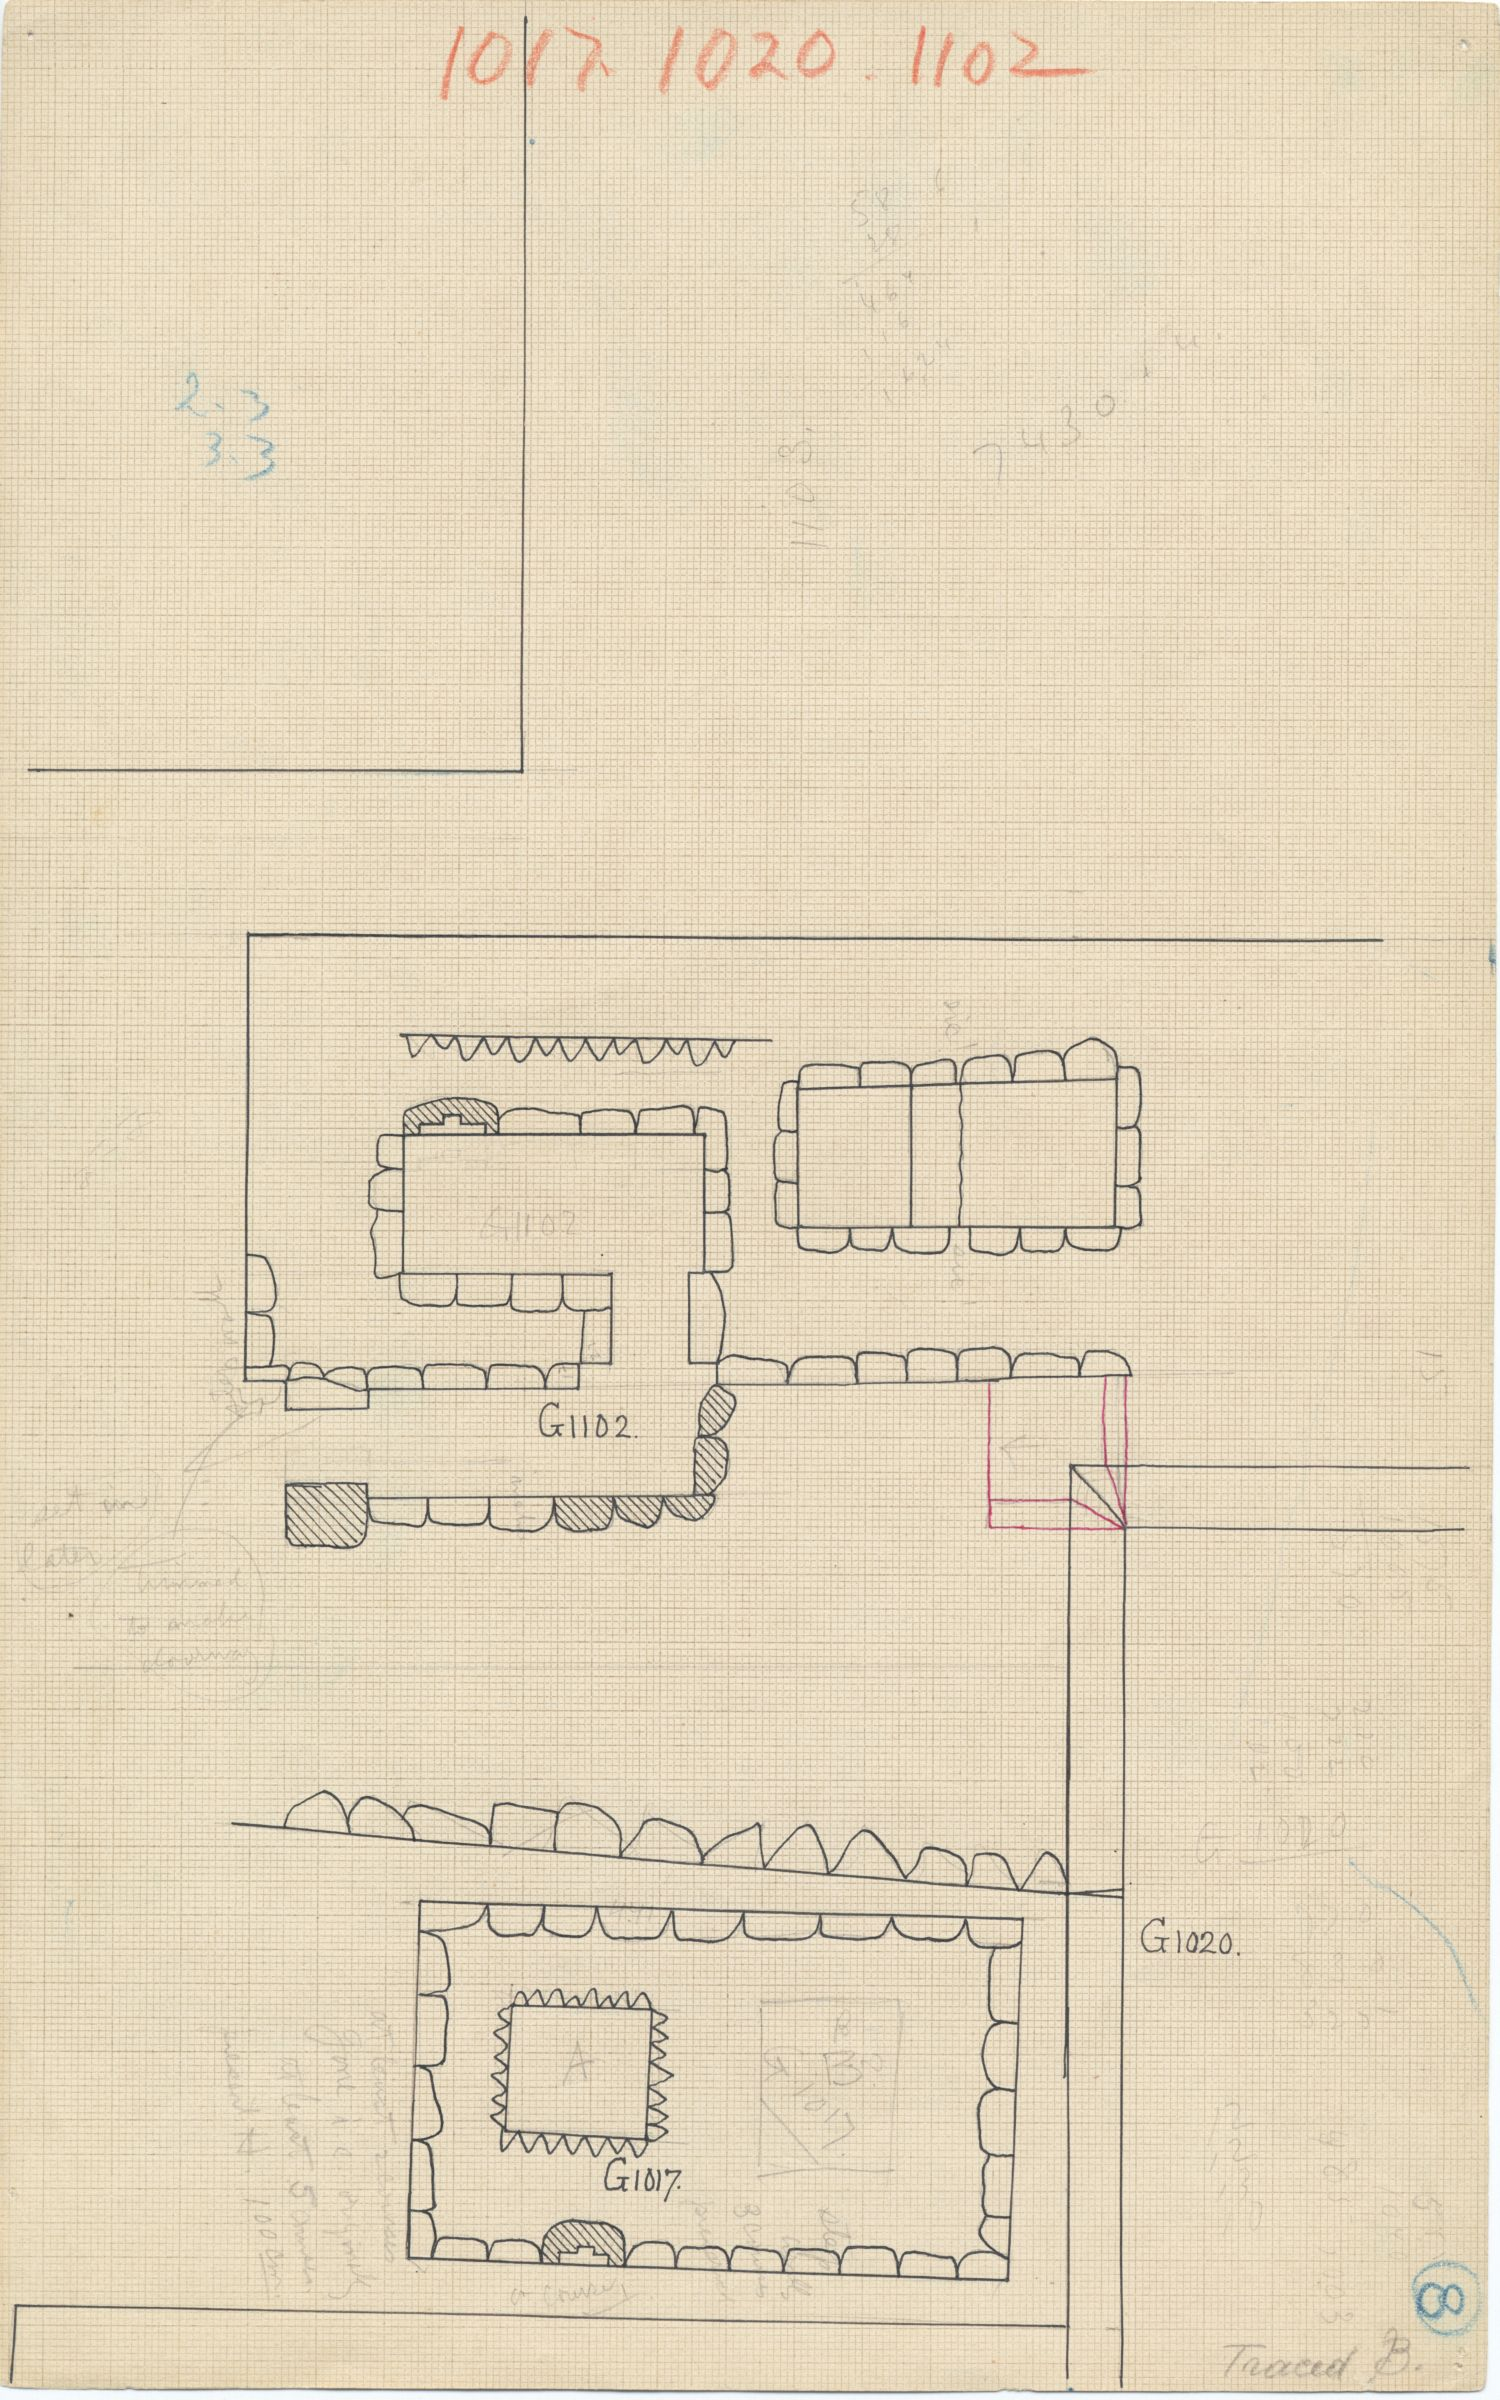 Maps and plans: Plan of G 1017 and G 1102, with position of G 1020